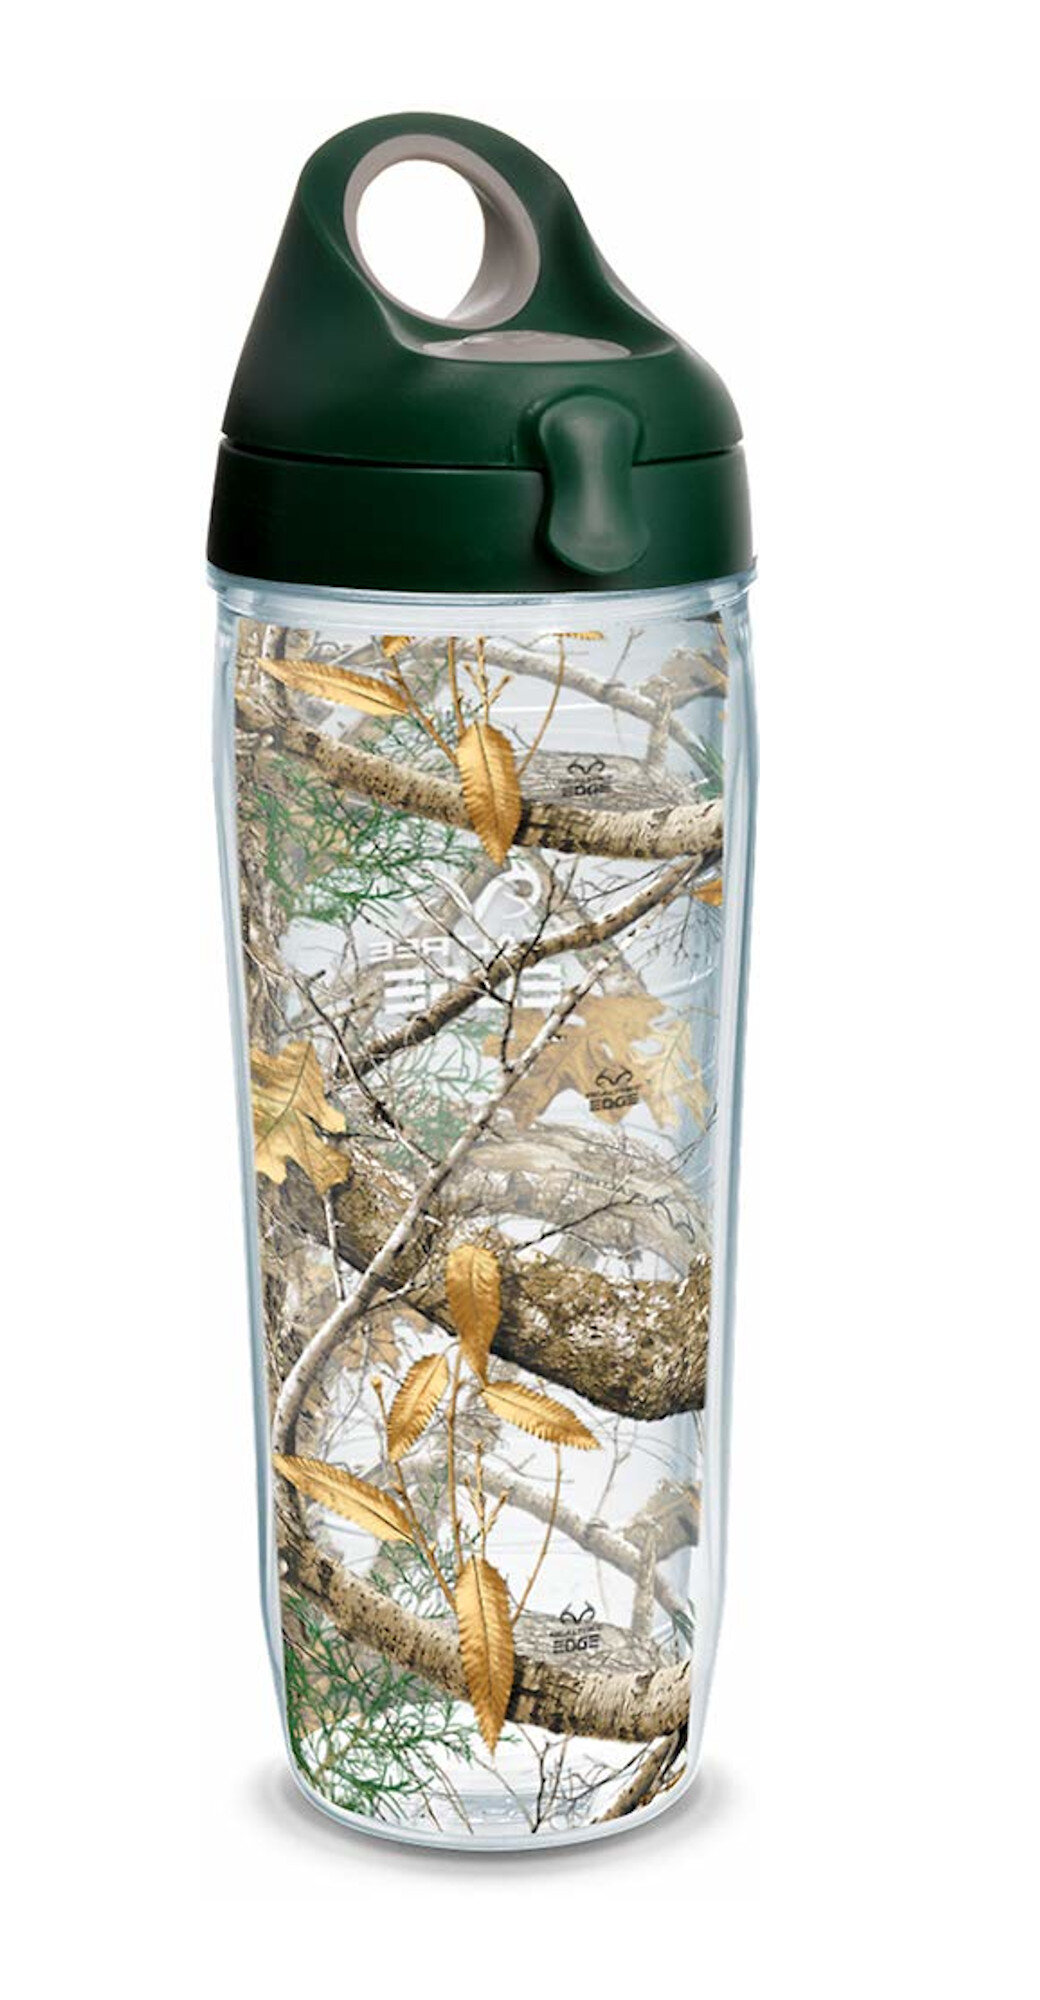 Tervis Tumbler Water Bottles You Ll Love In 2021 Wayfair